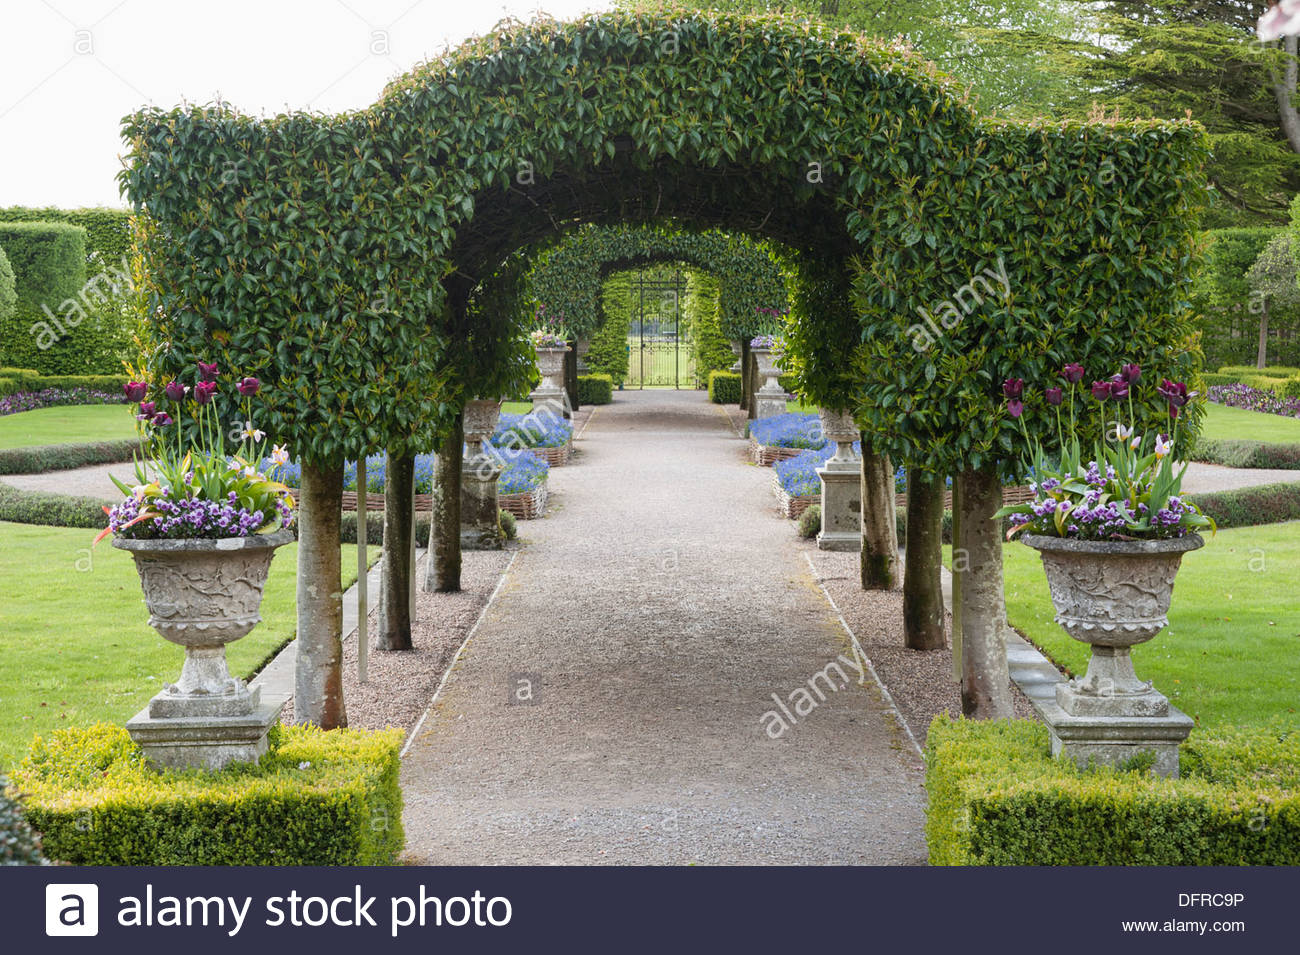 laurel tunnel stock photos laurel tunnel stock images alamy the summer garden central archway of portugese laurel framed urns set into clipped box